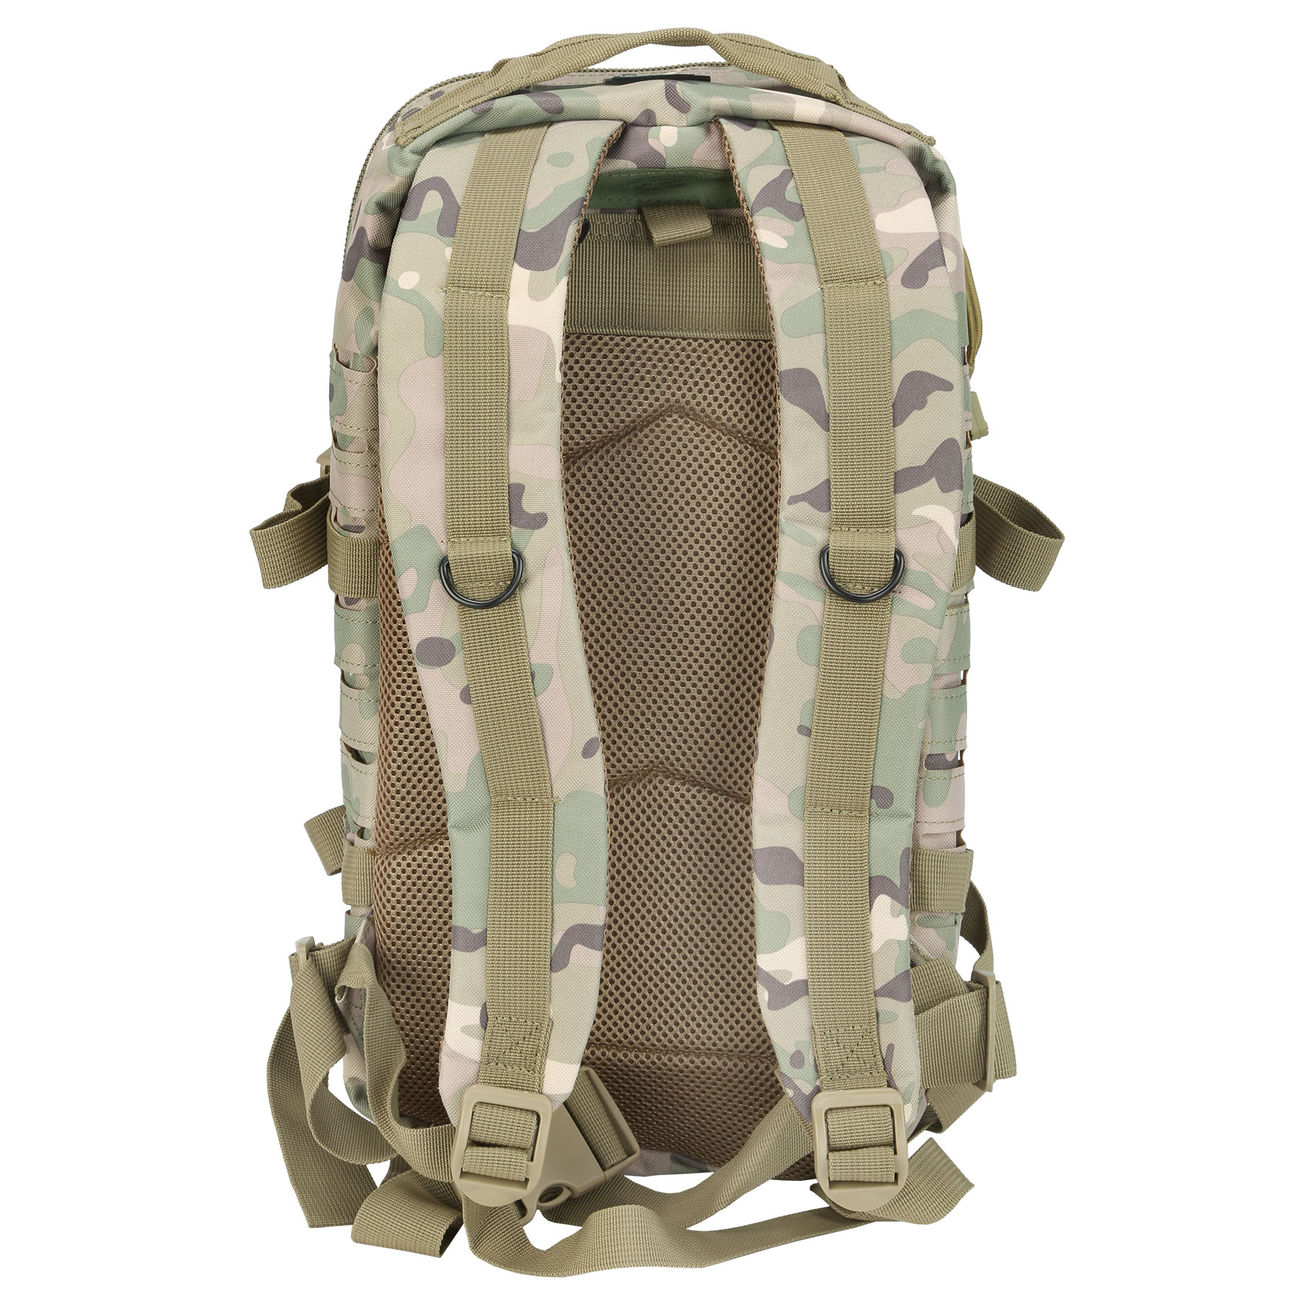 MFH Rucksack US Assault I Laser 30L operation-camo 7